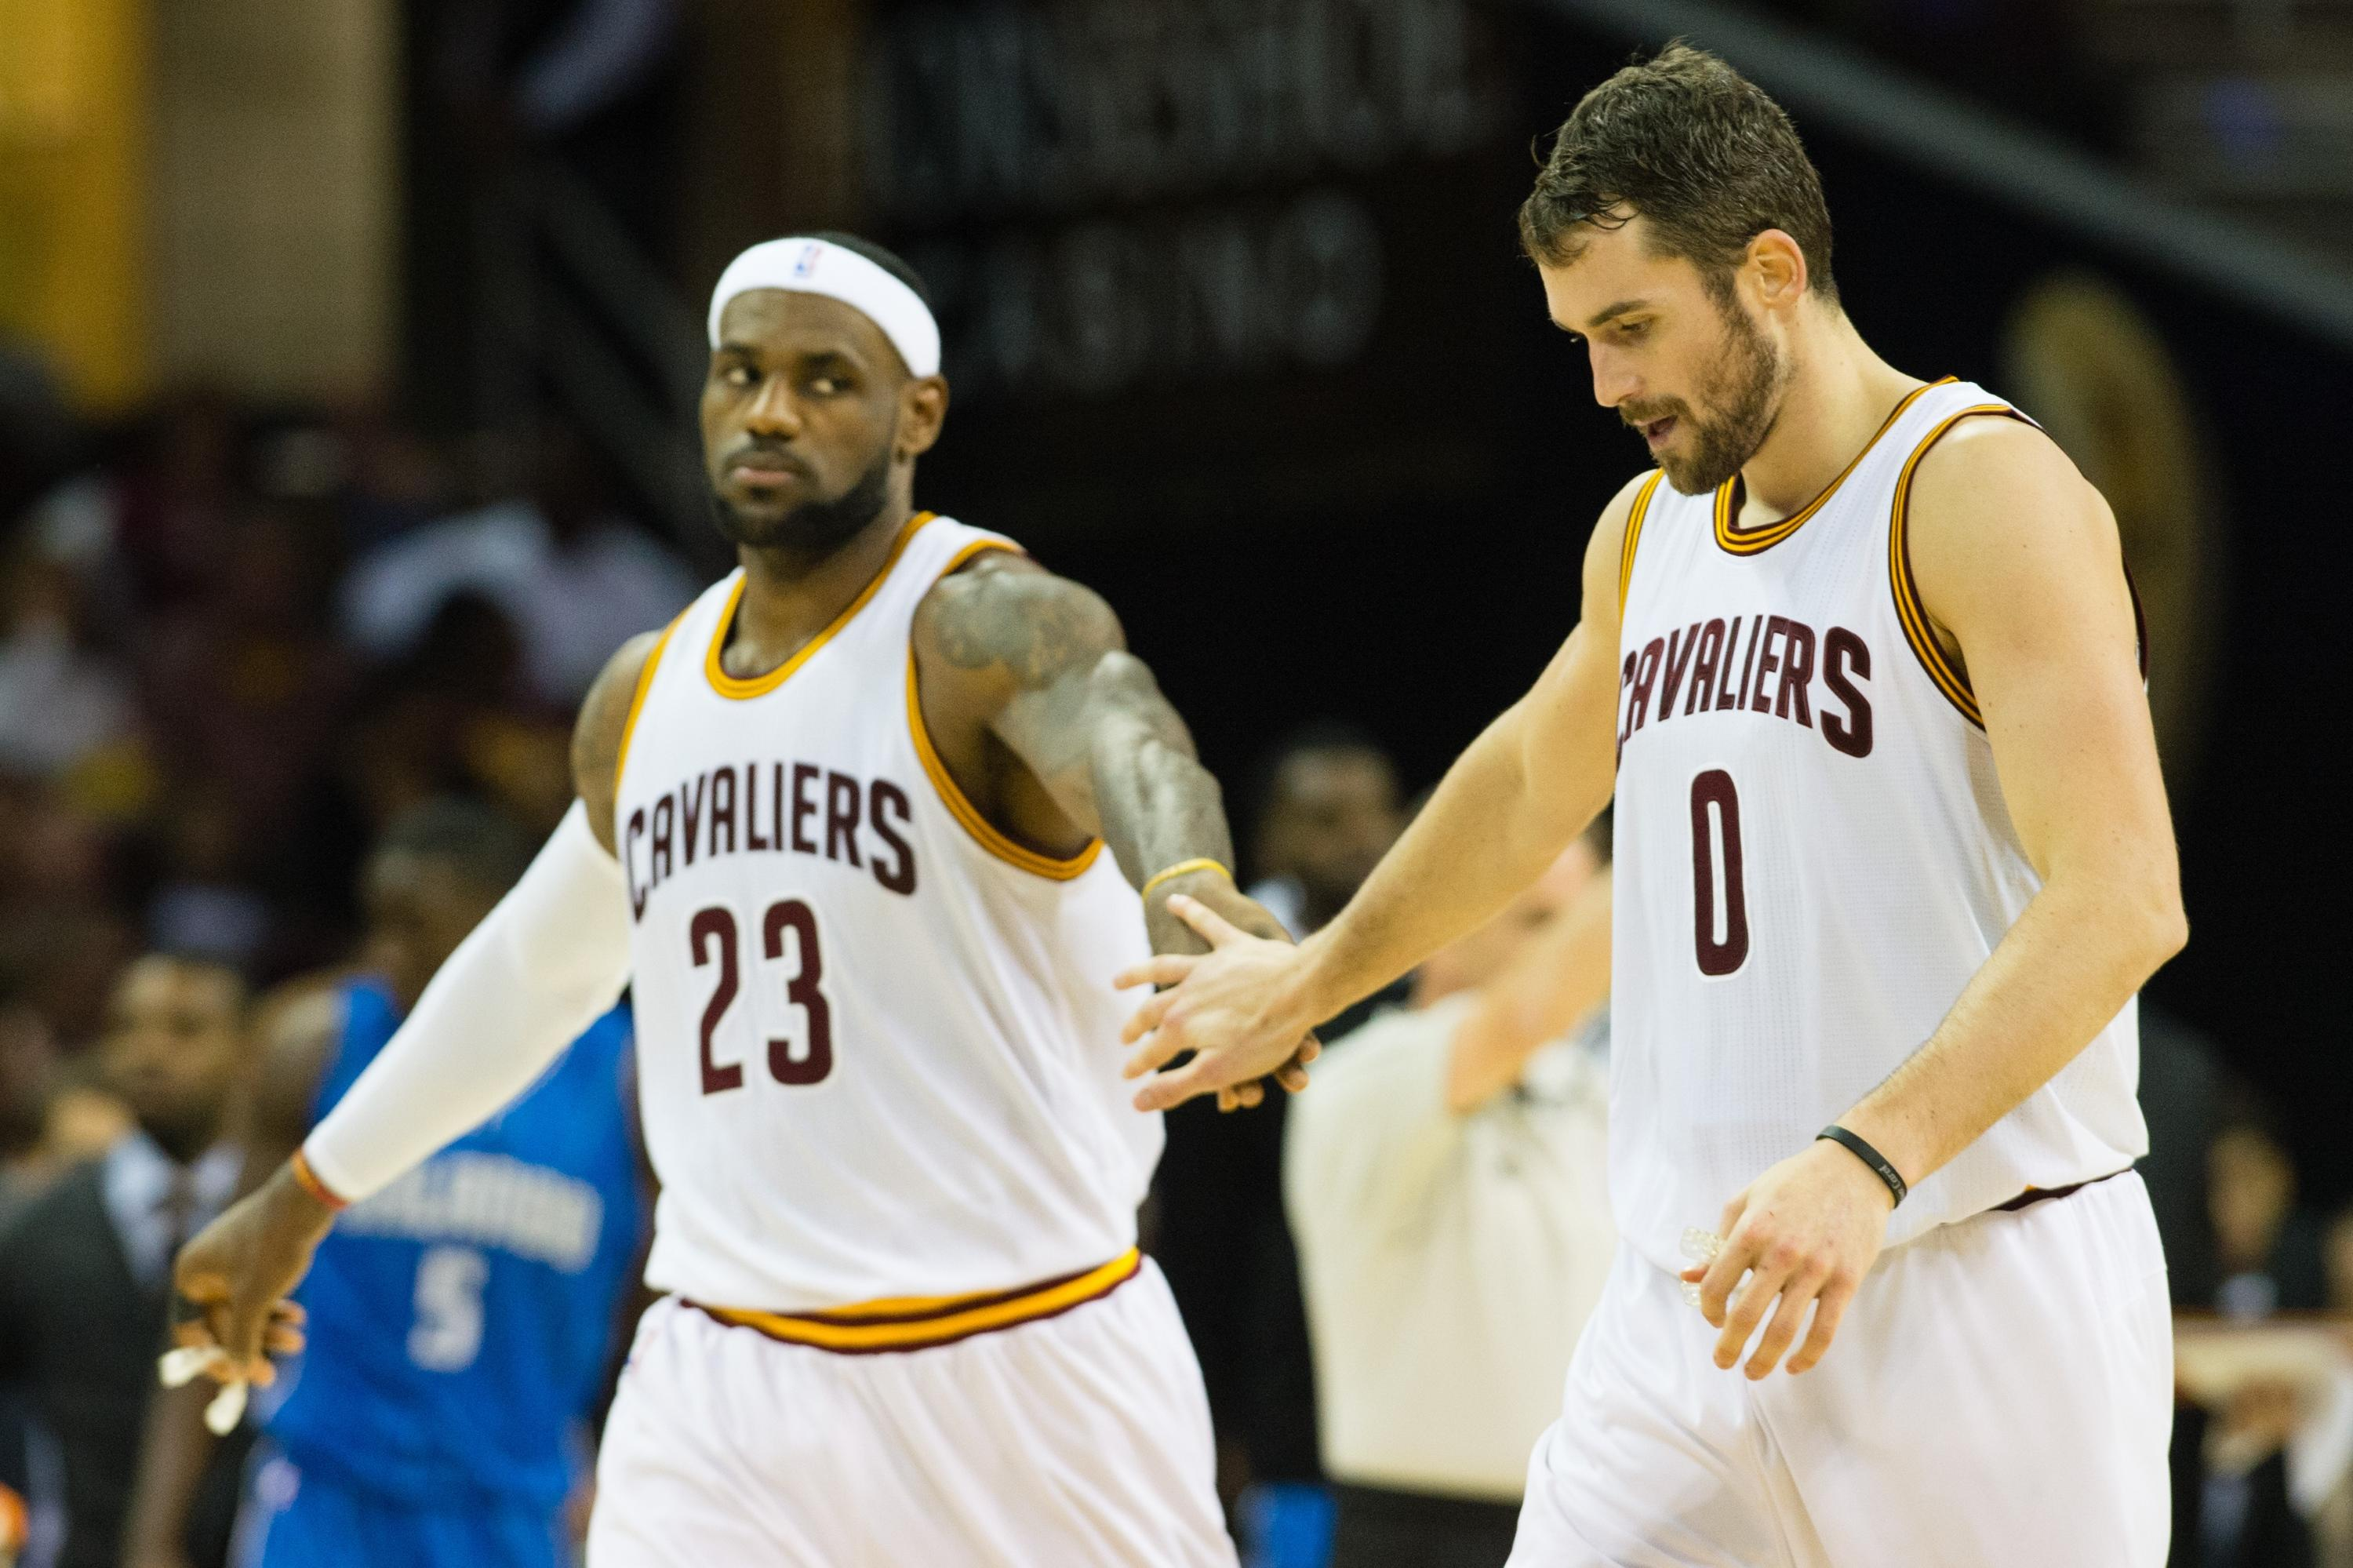 'Frustrated' or not, LeBron James, Kevin Love and the Cavs seem to fit awful well